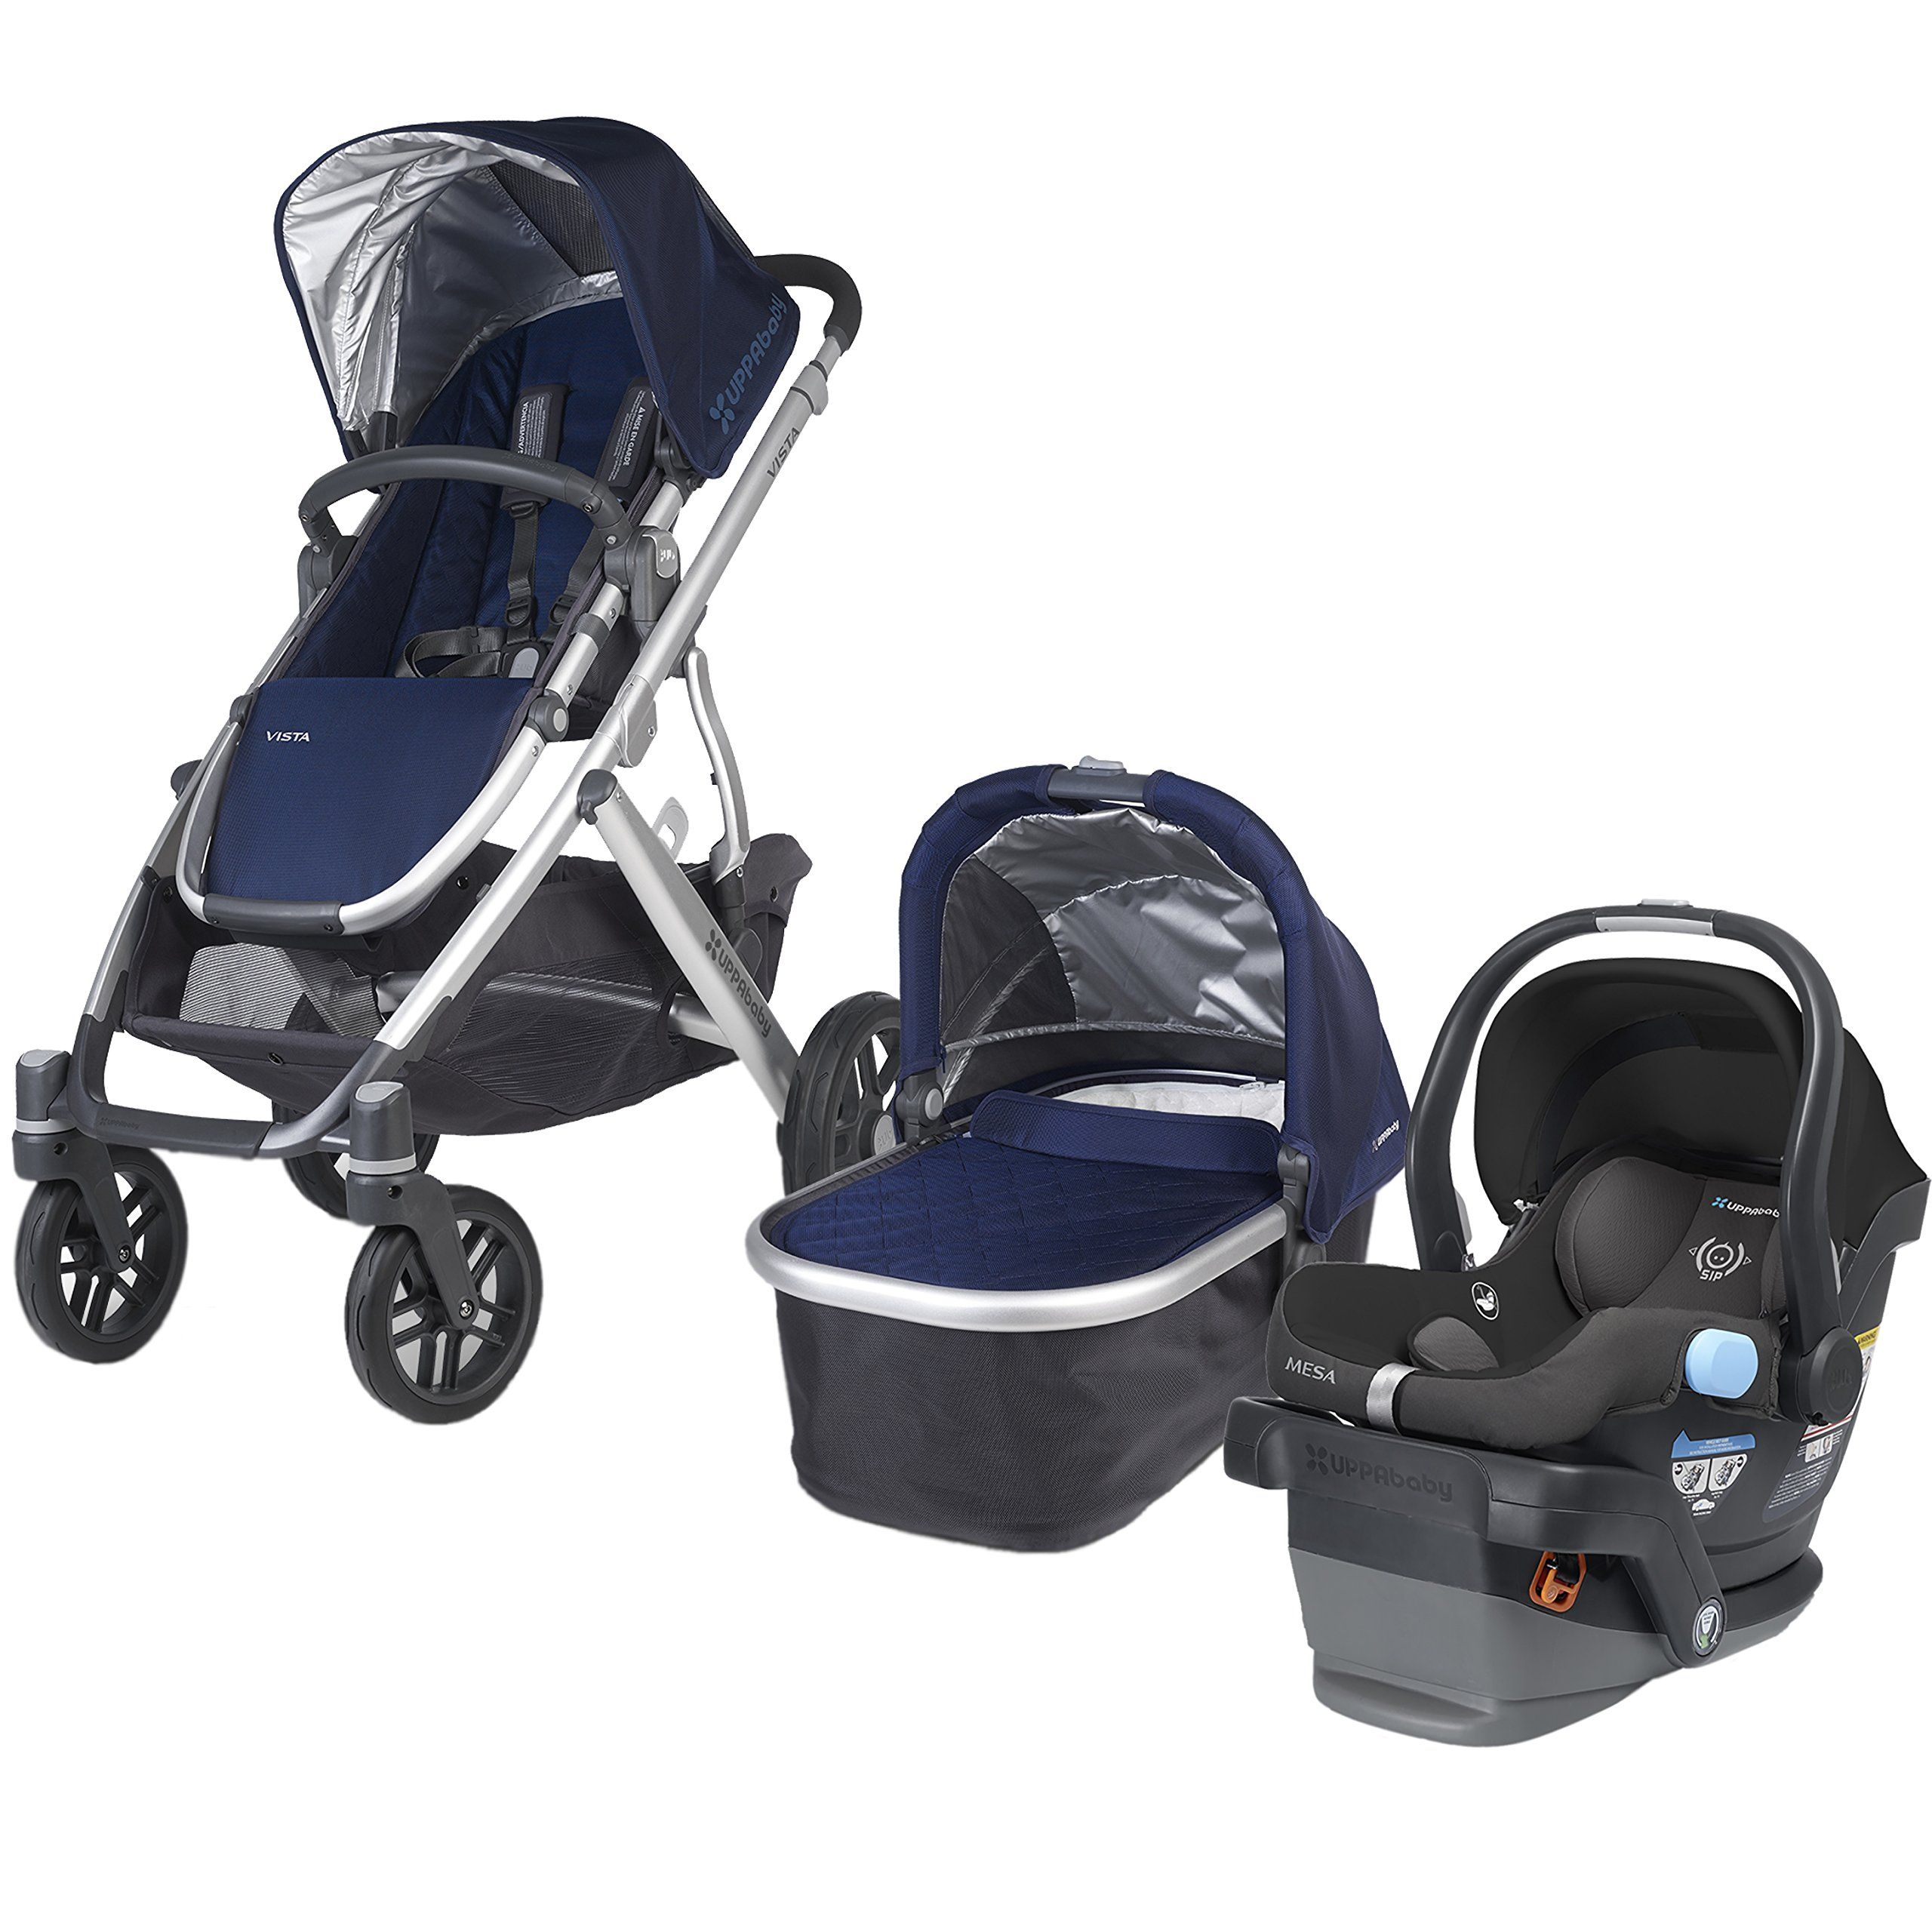 UPPAbaby Vista Travel System Taylor 2015 Includes Stroller And Bassinet In Infant Car SeatsSilver